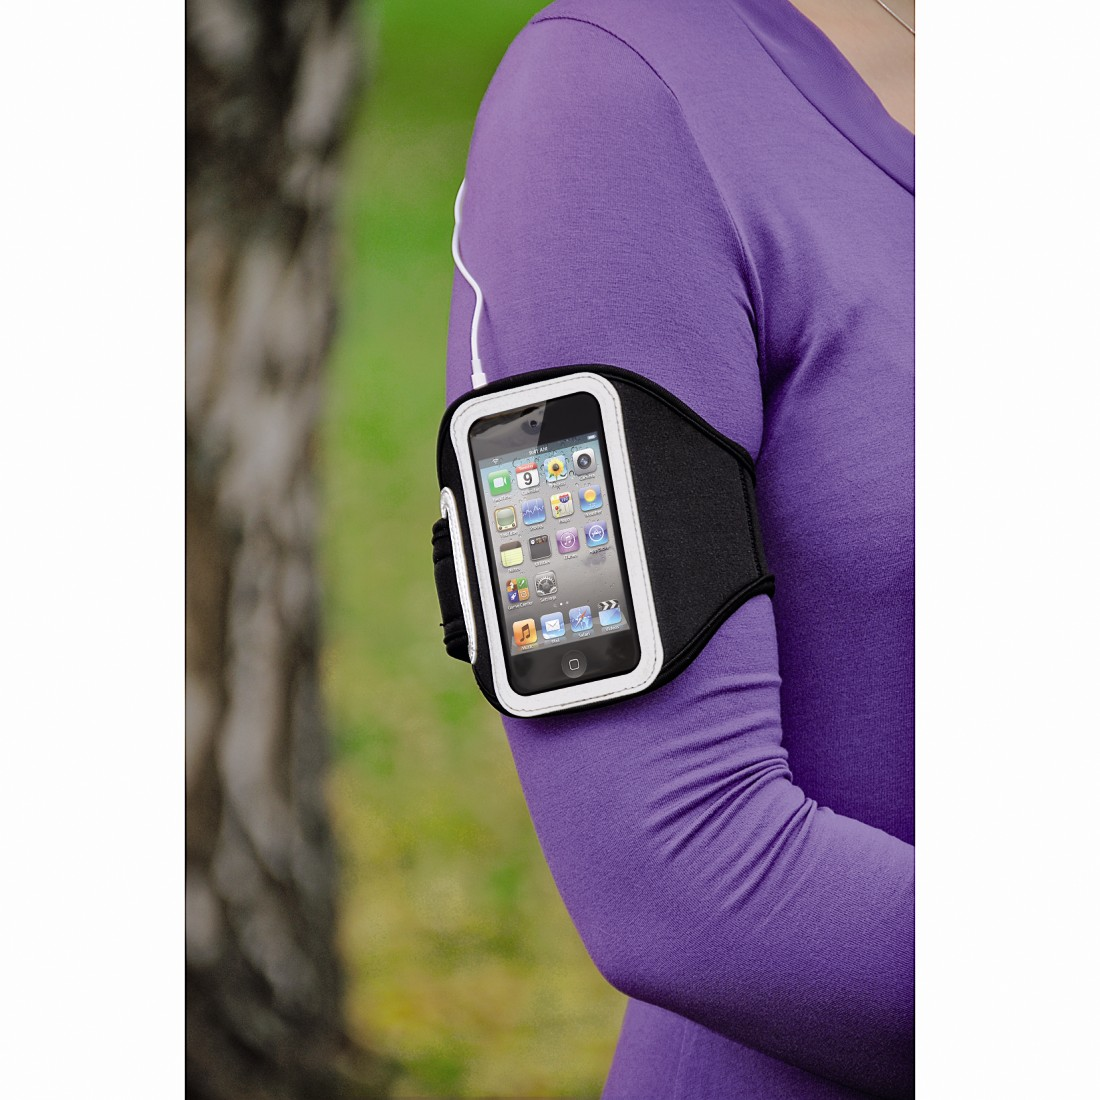 awx High-Res Appliance - Hama, Marathon Armband Case for iPod touch 4G, neoprene, black